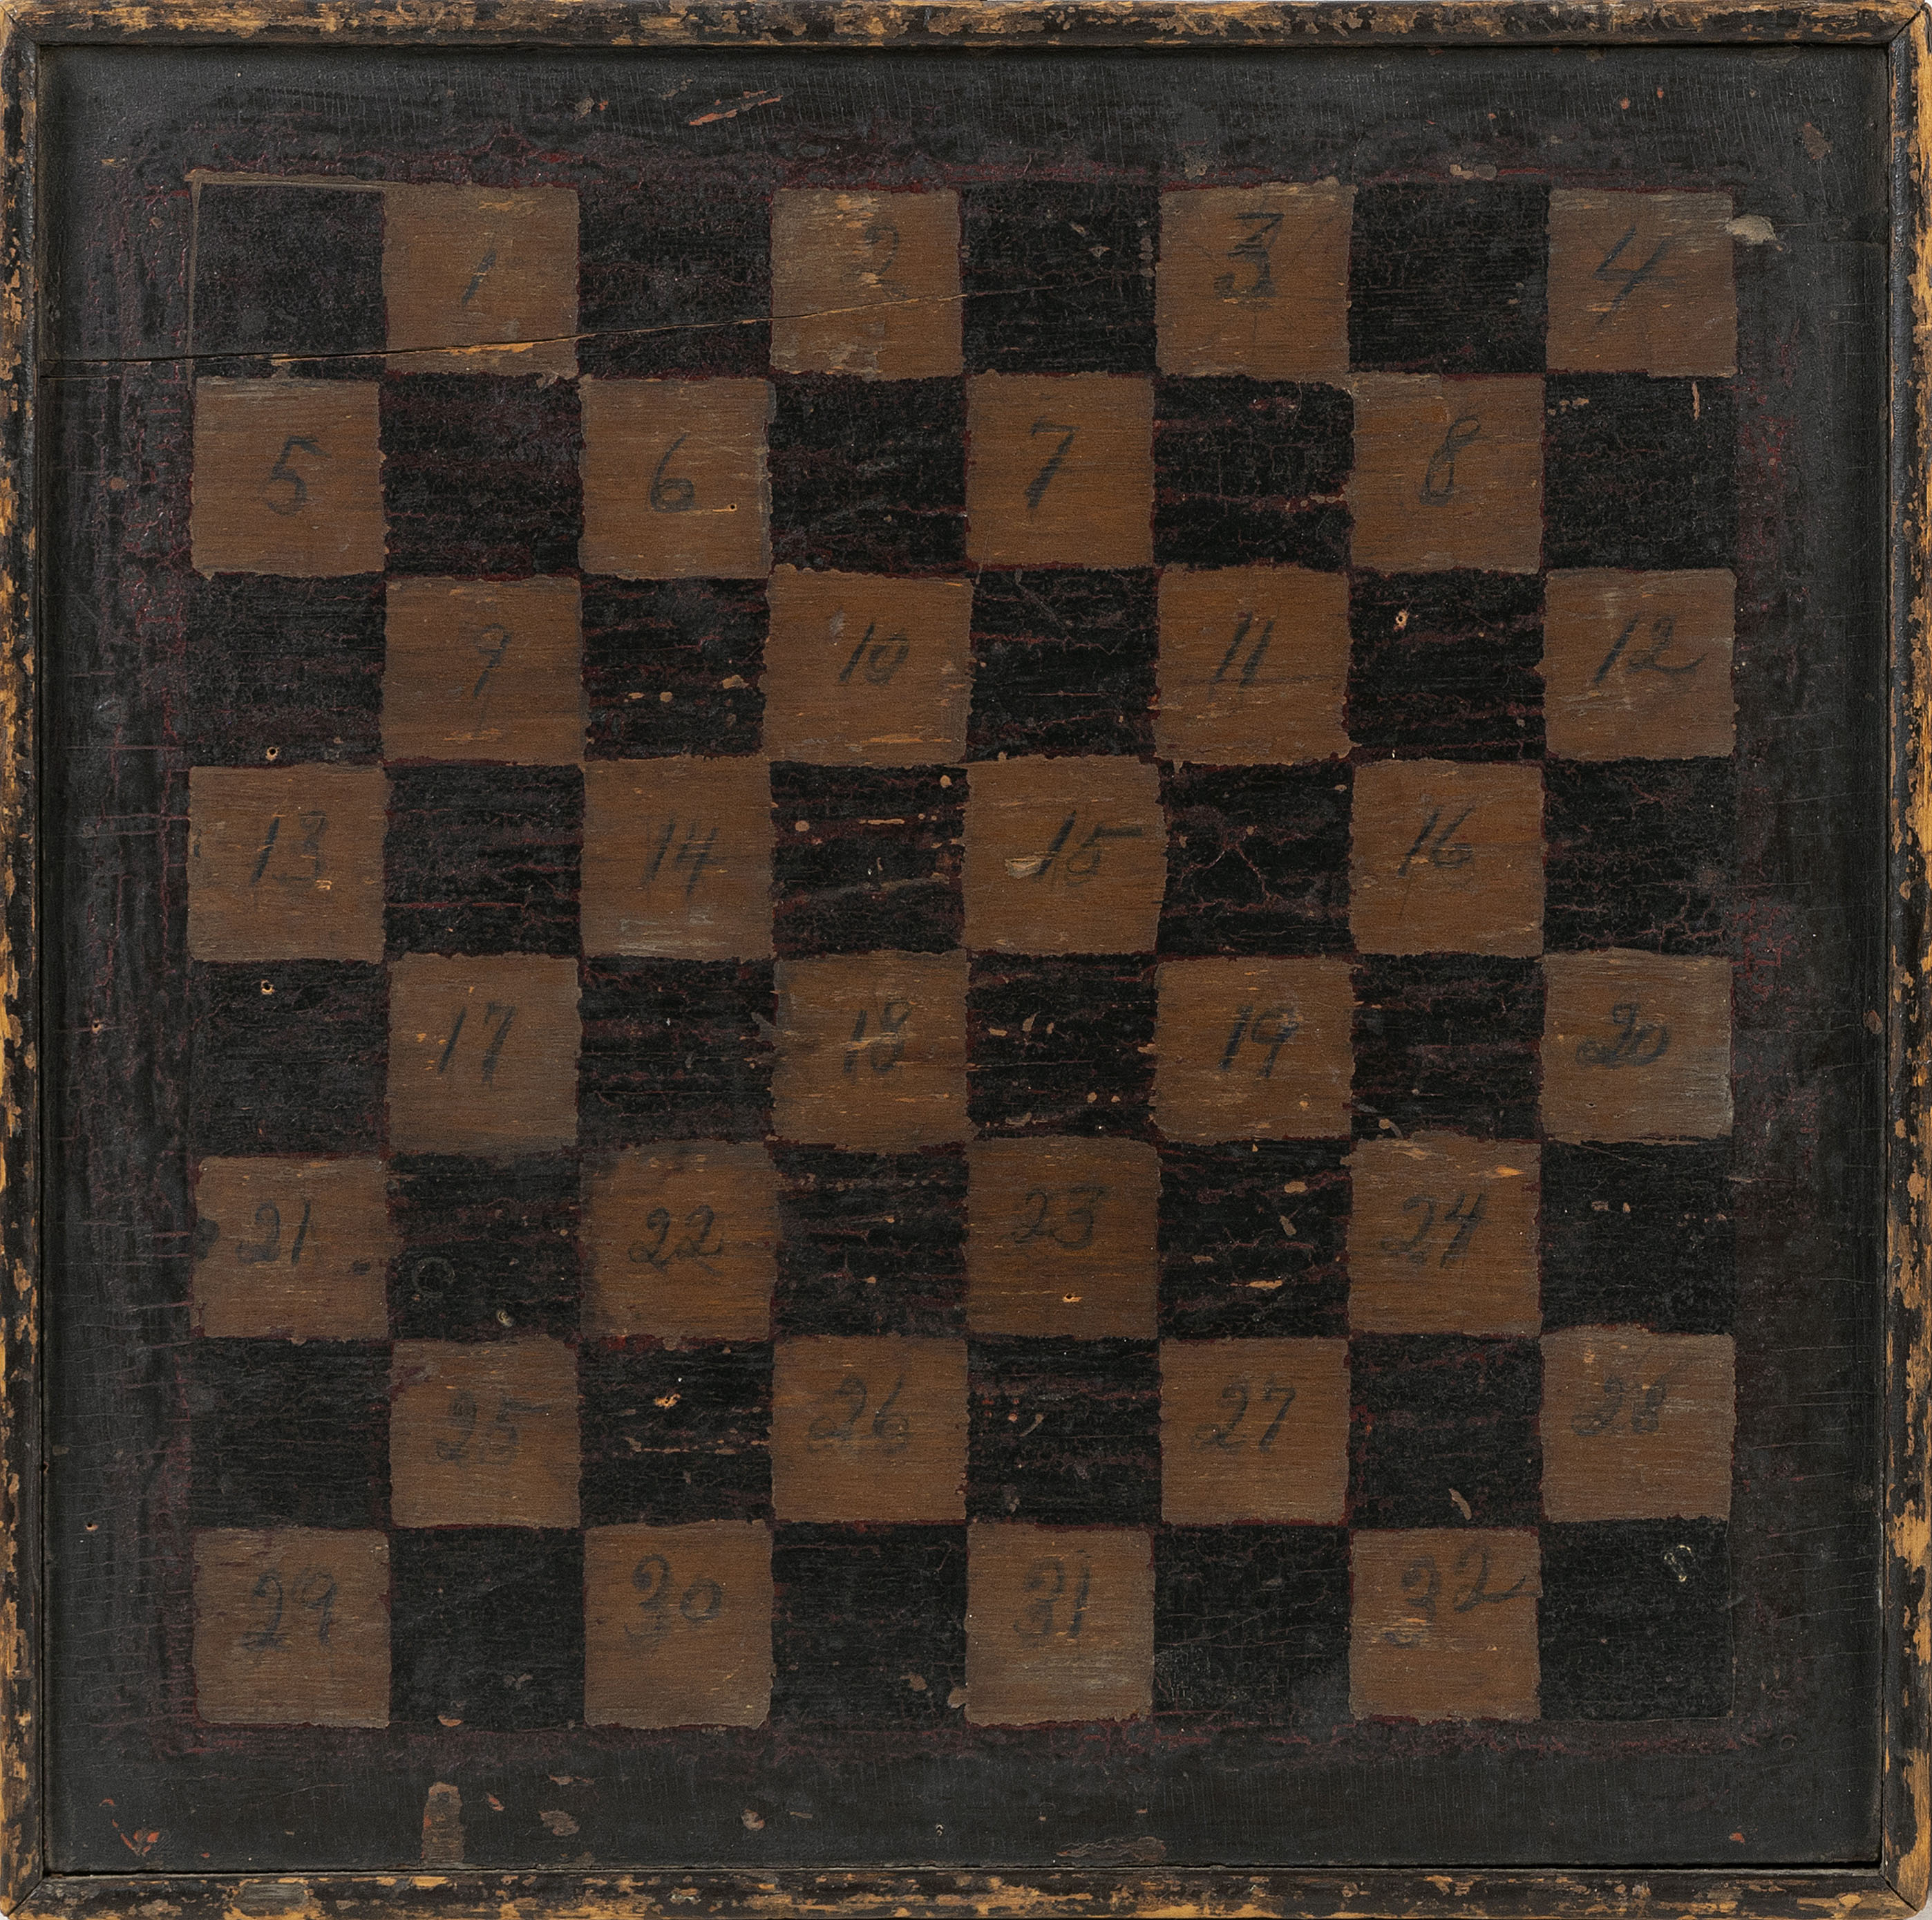 WOODEN GAMEBOARD 19th Century 17.25